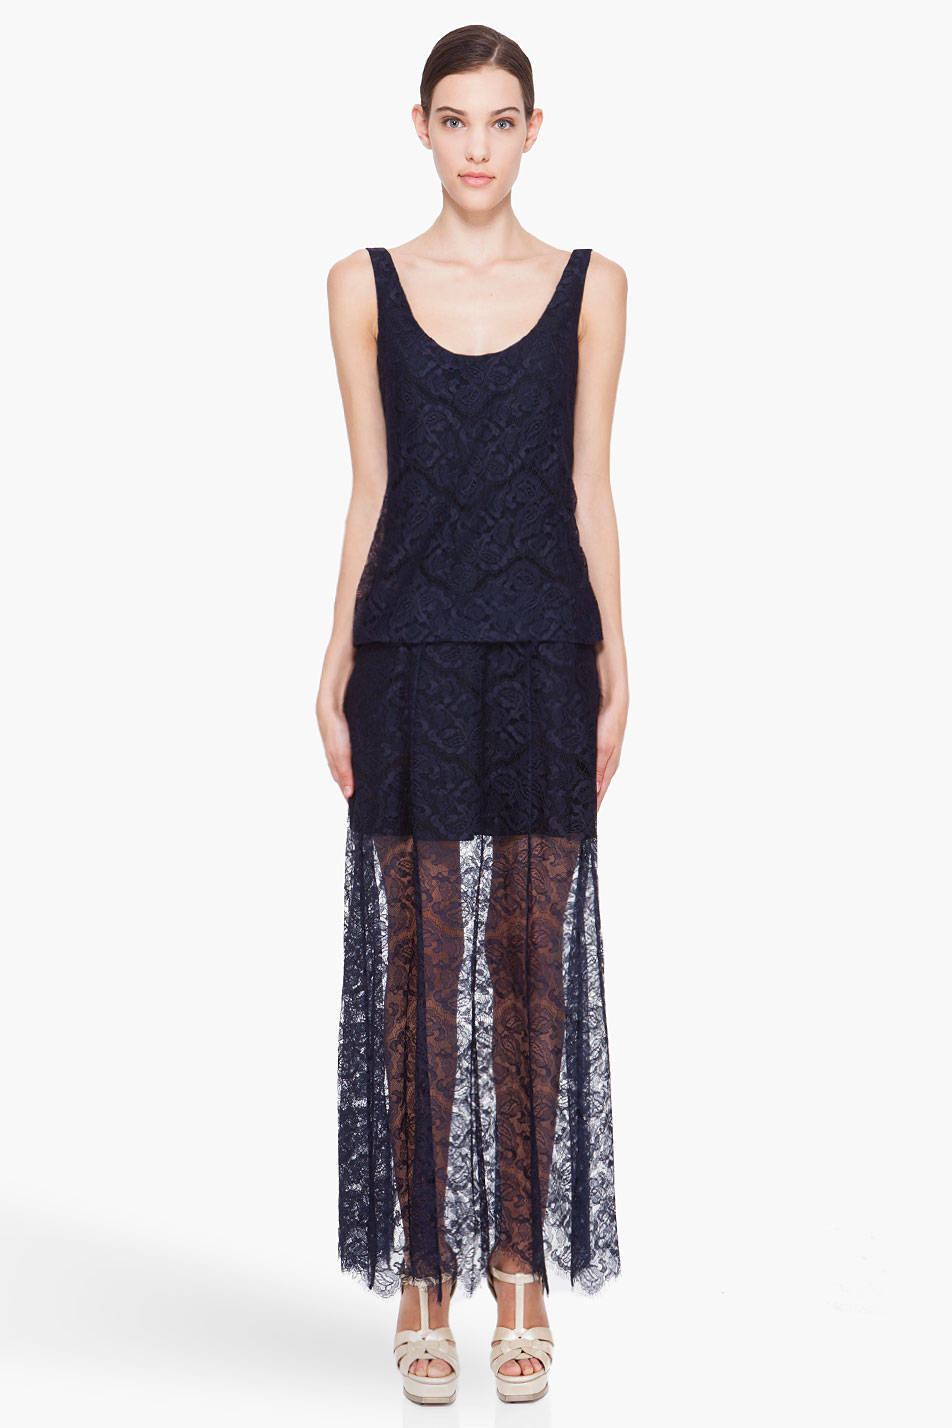 Lyst Carven Long Navy Lace Dress In Blue